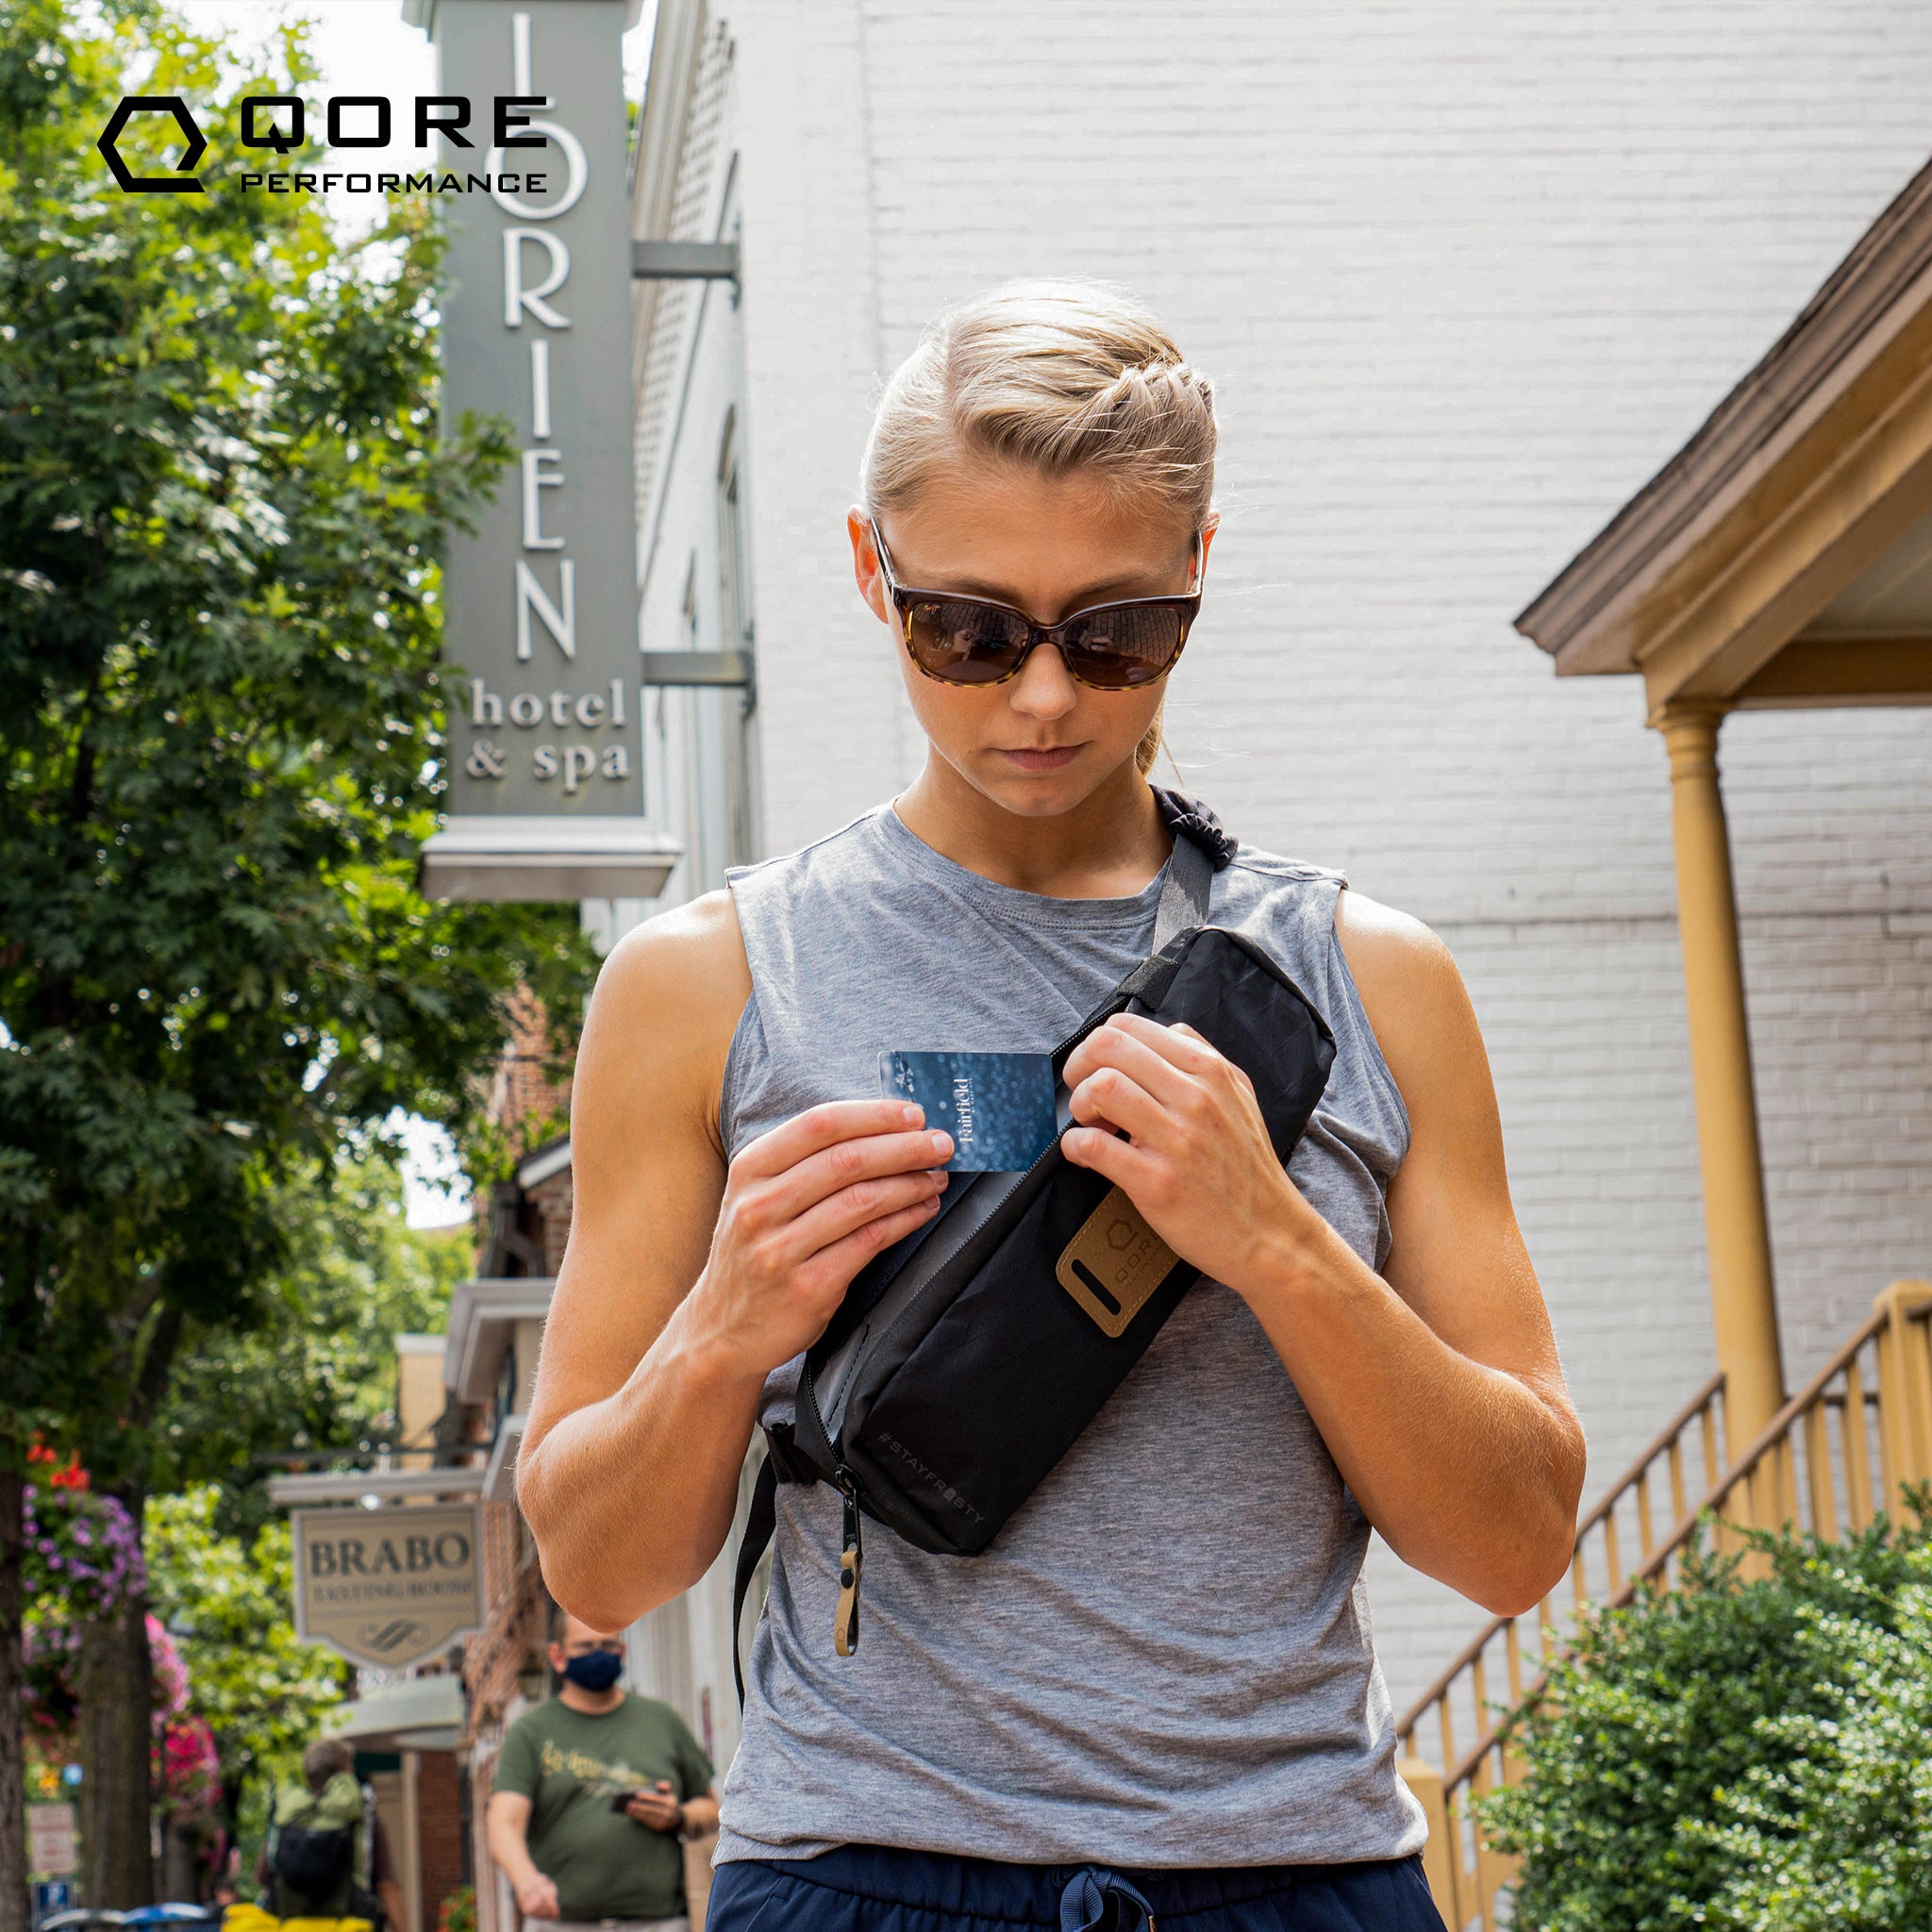 EDC Travel Sling by Qore Performance for walking, hiking, travel, every day carry, bike riding can carry a Taser Pulse, Glock 43, Sig Sauer P365, or Pepper Spray